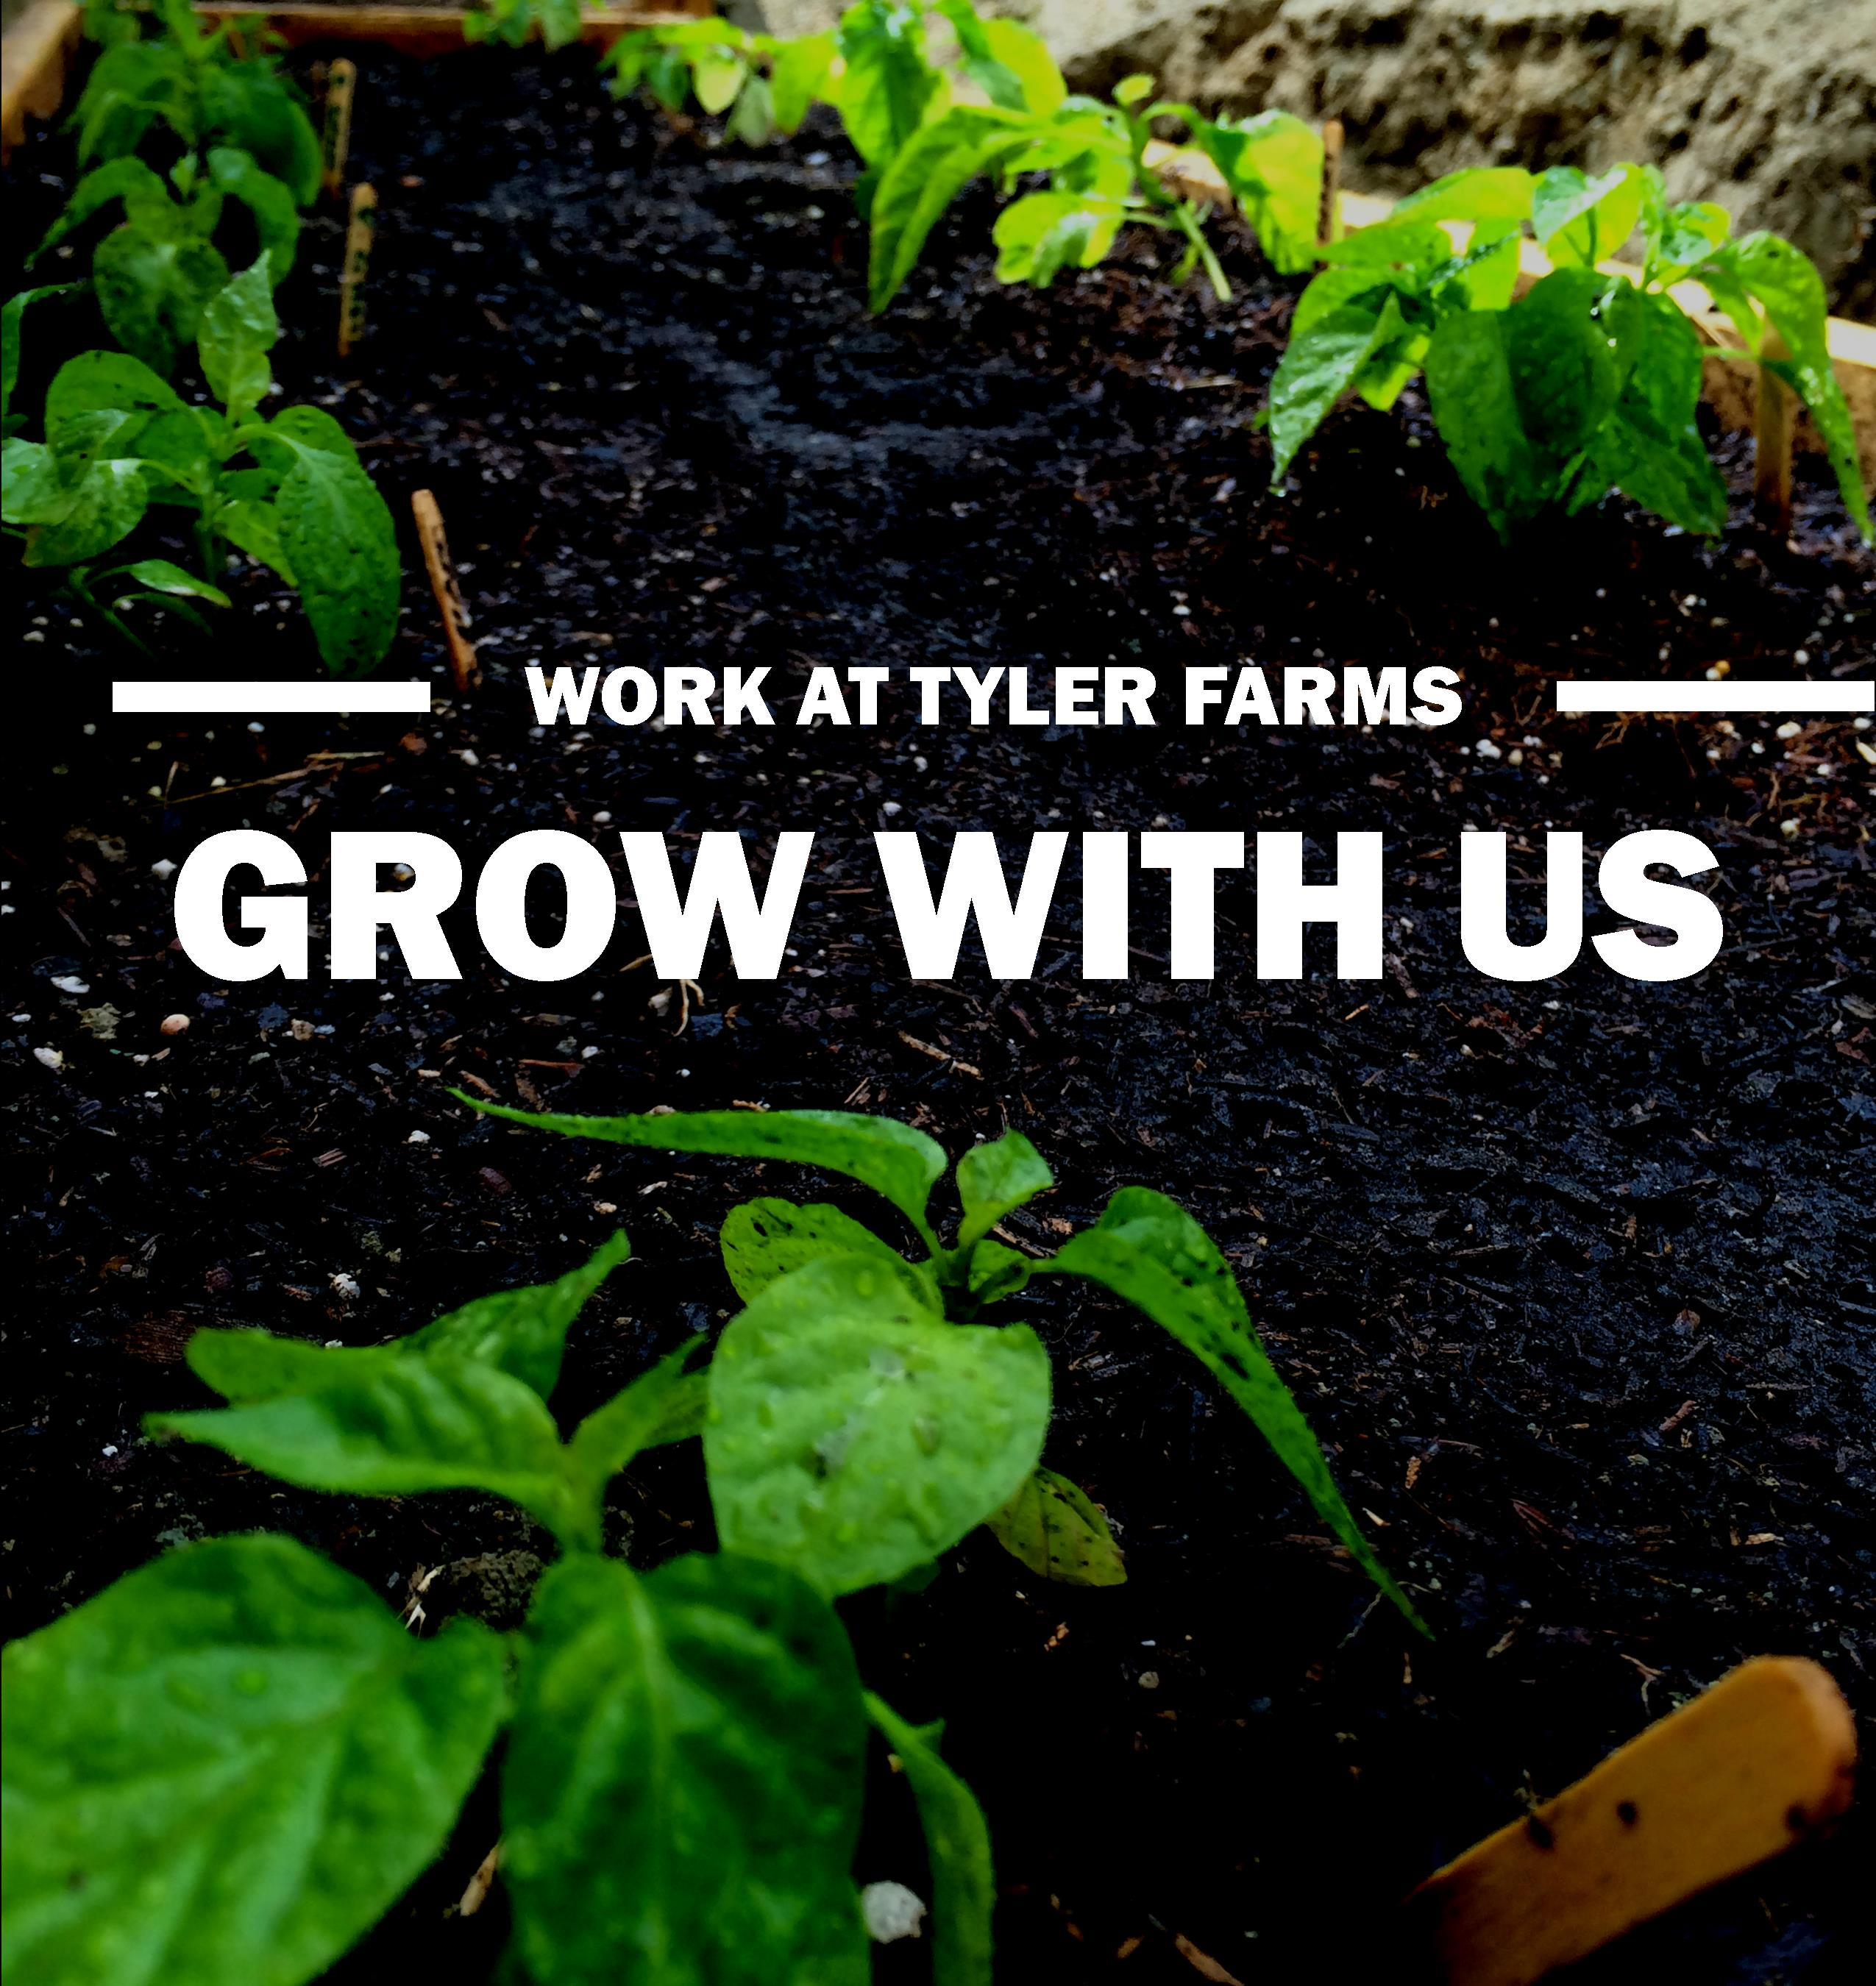 tyler-farms-grow-with-us.jpg